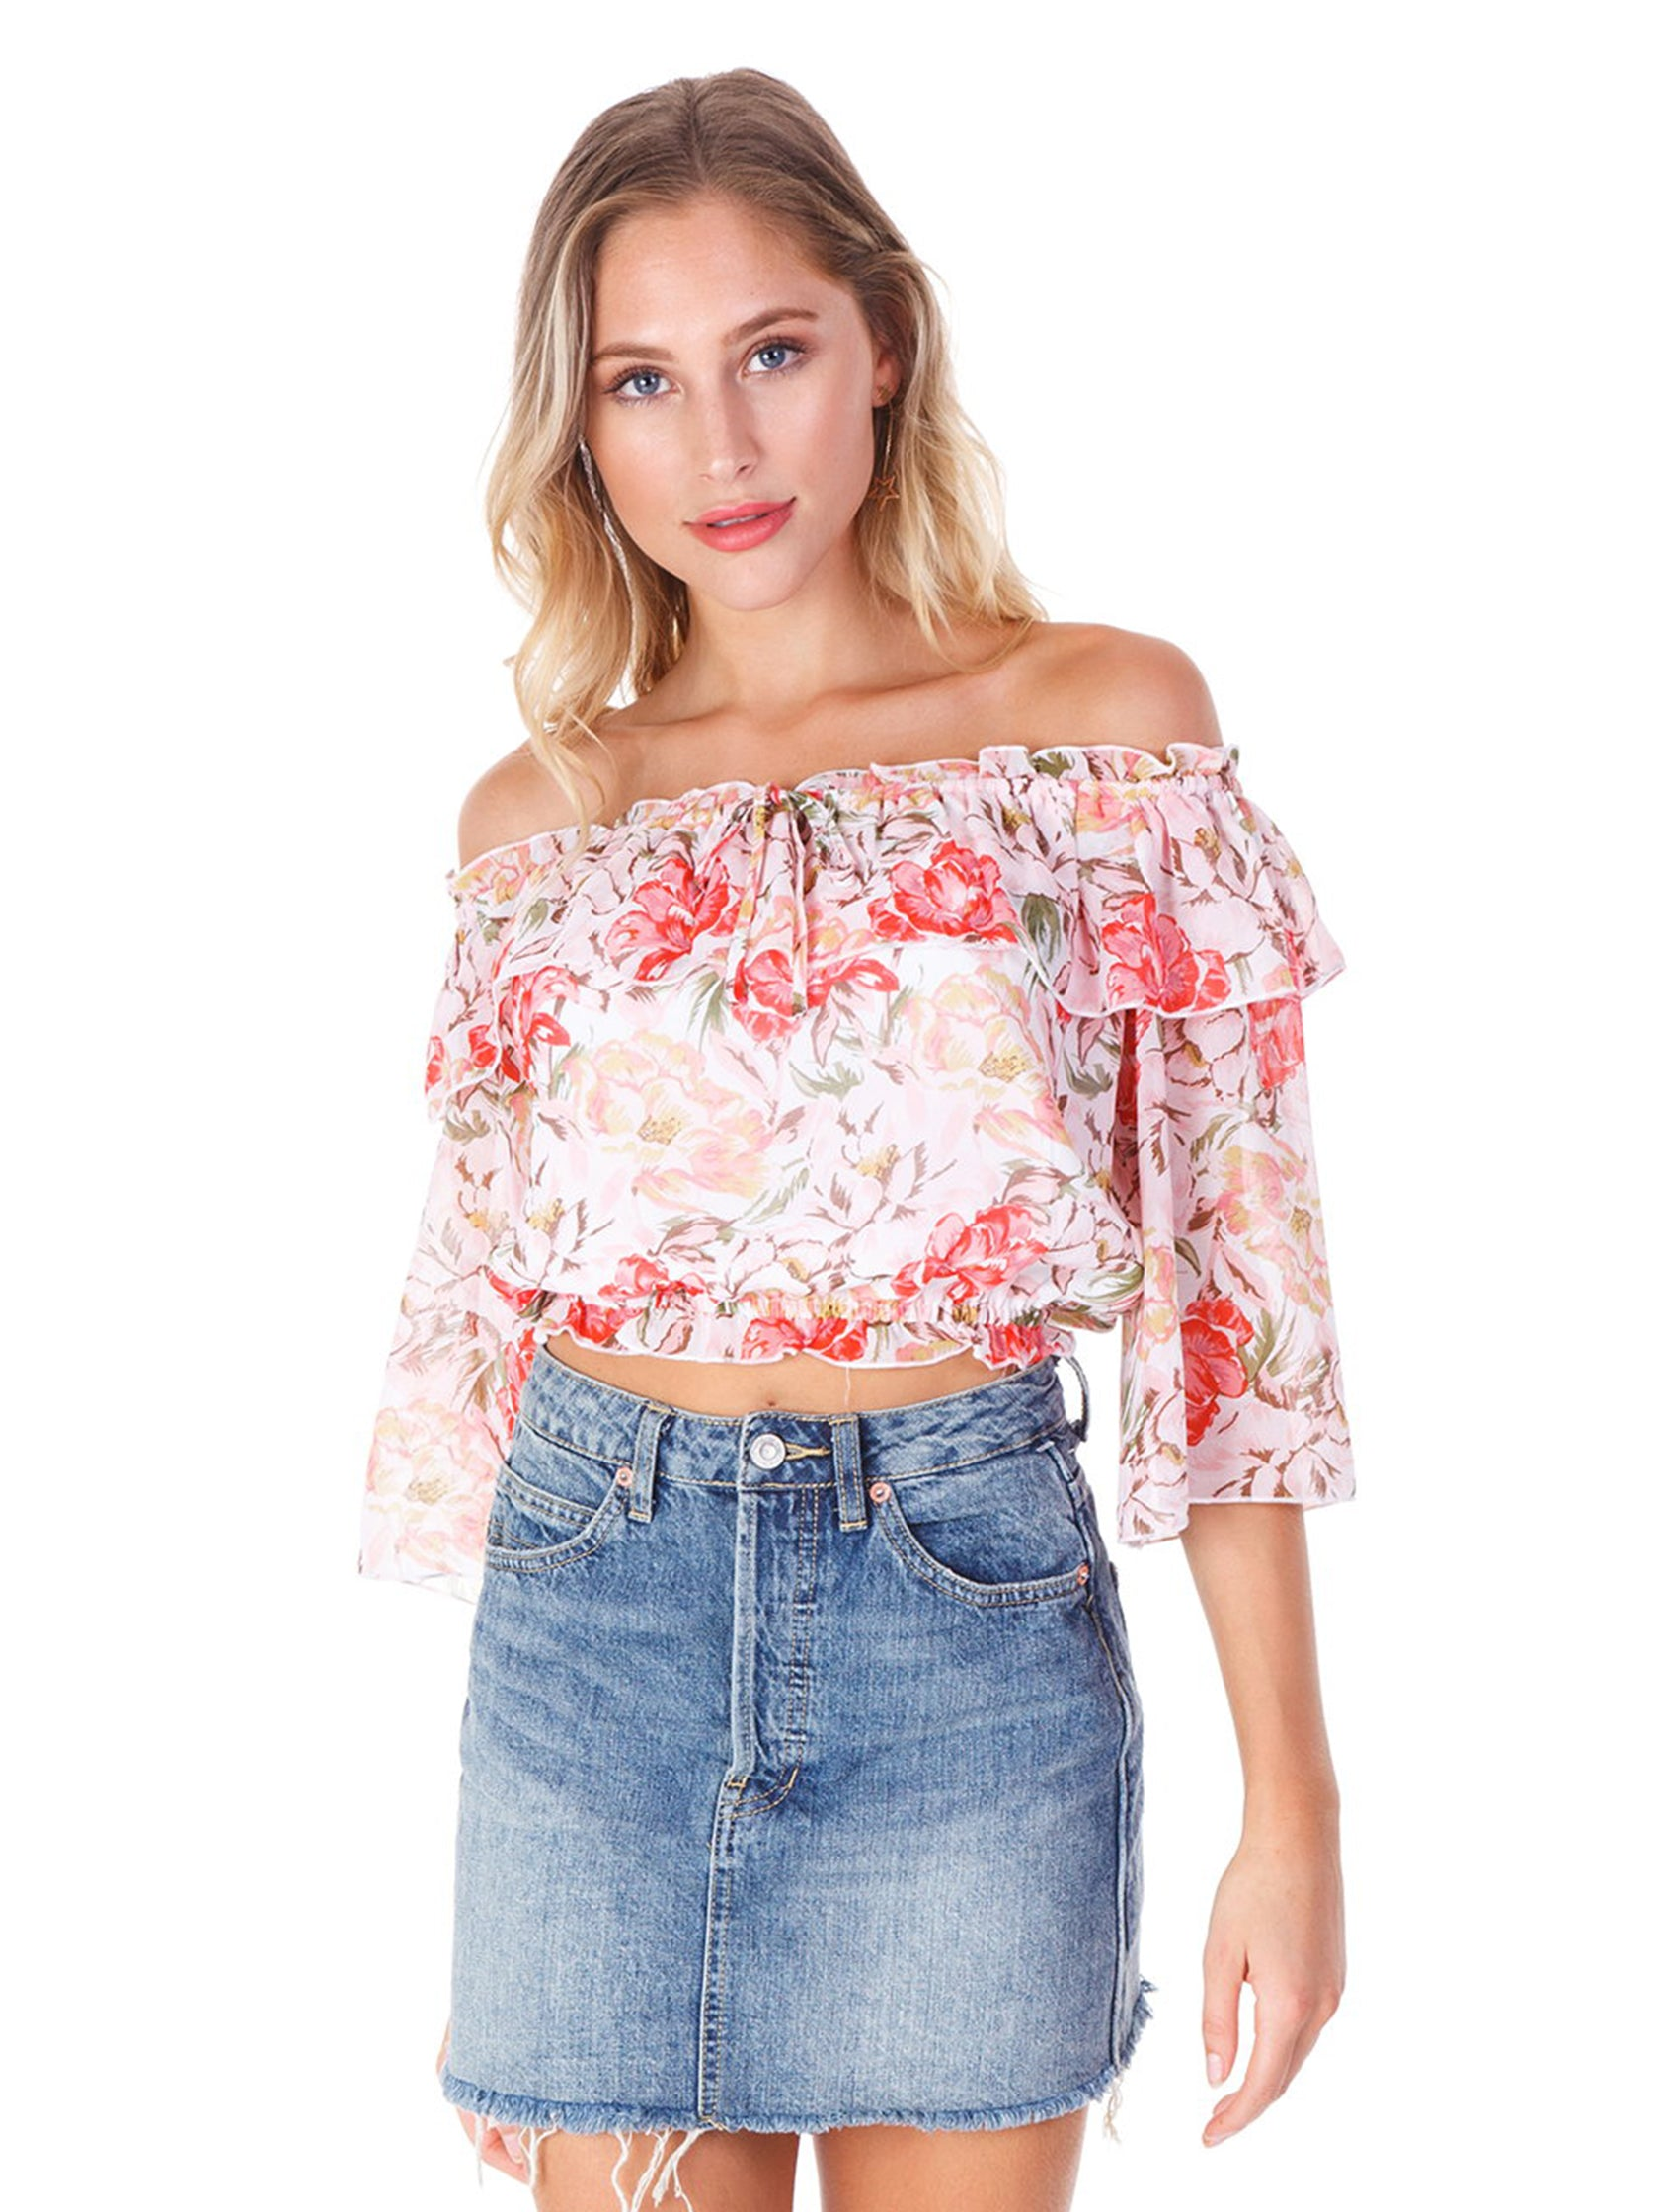 Girl wearing a top rental from WAYF called Cosenza Off Shoulder Crop Top